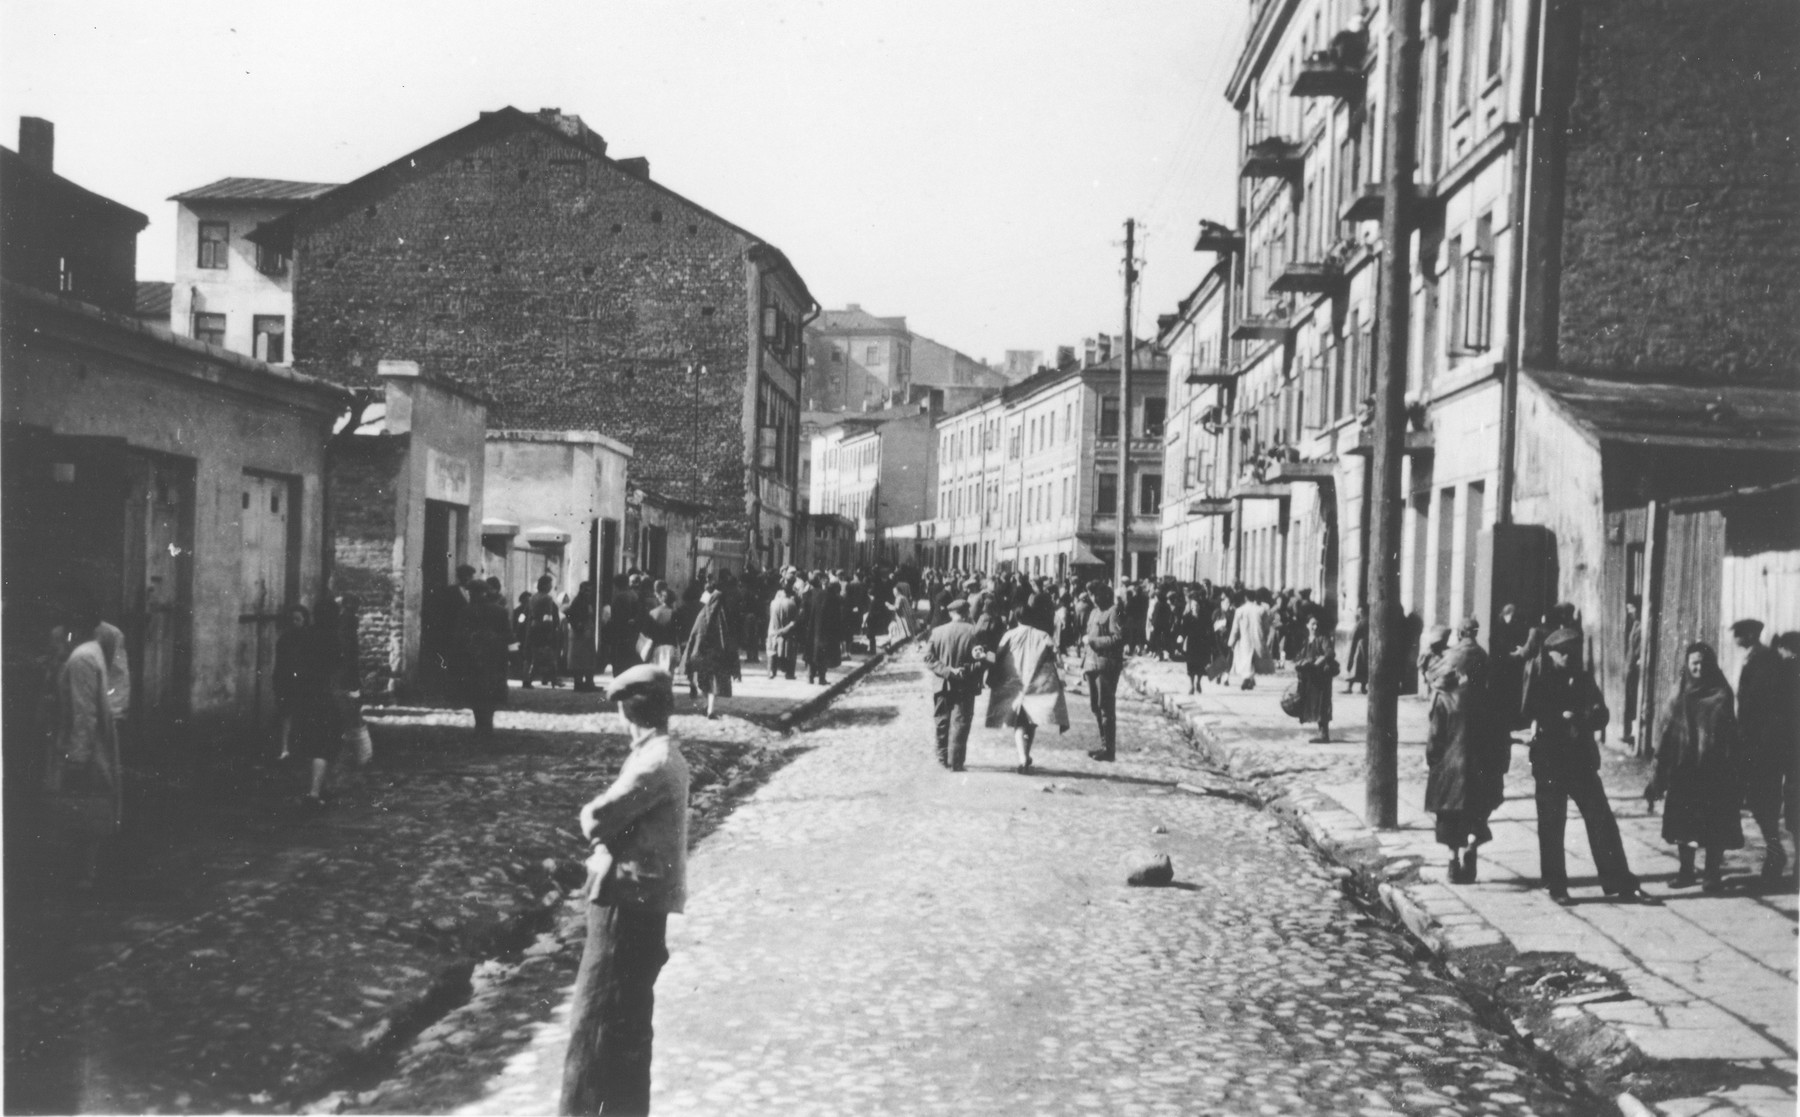 Polish Jews wearing armbands walk down a busy commercial street in an unidentified ghetto.